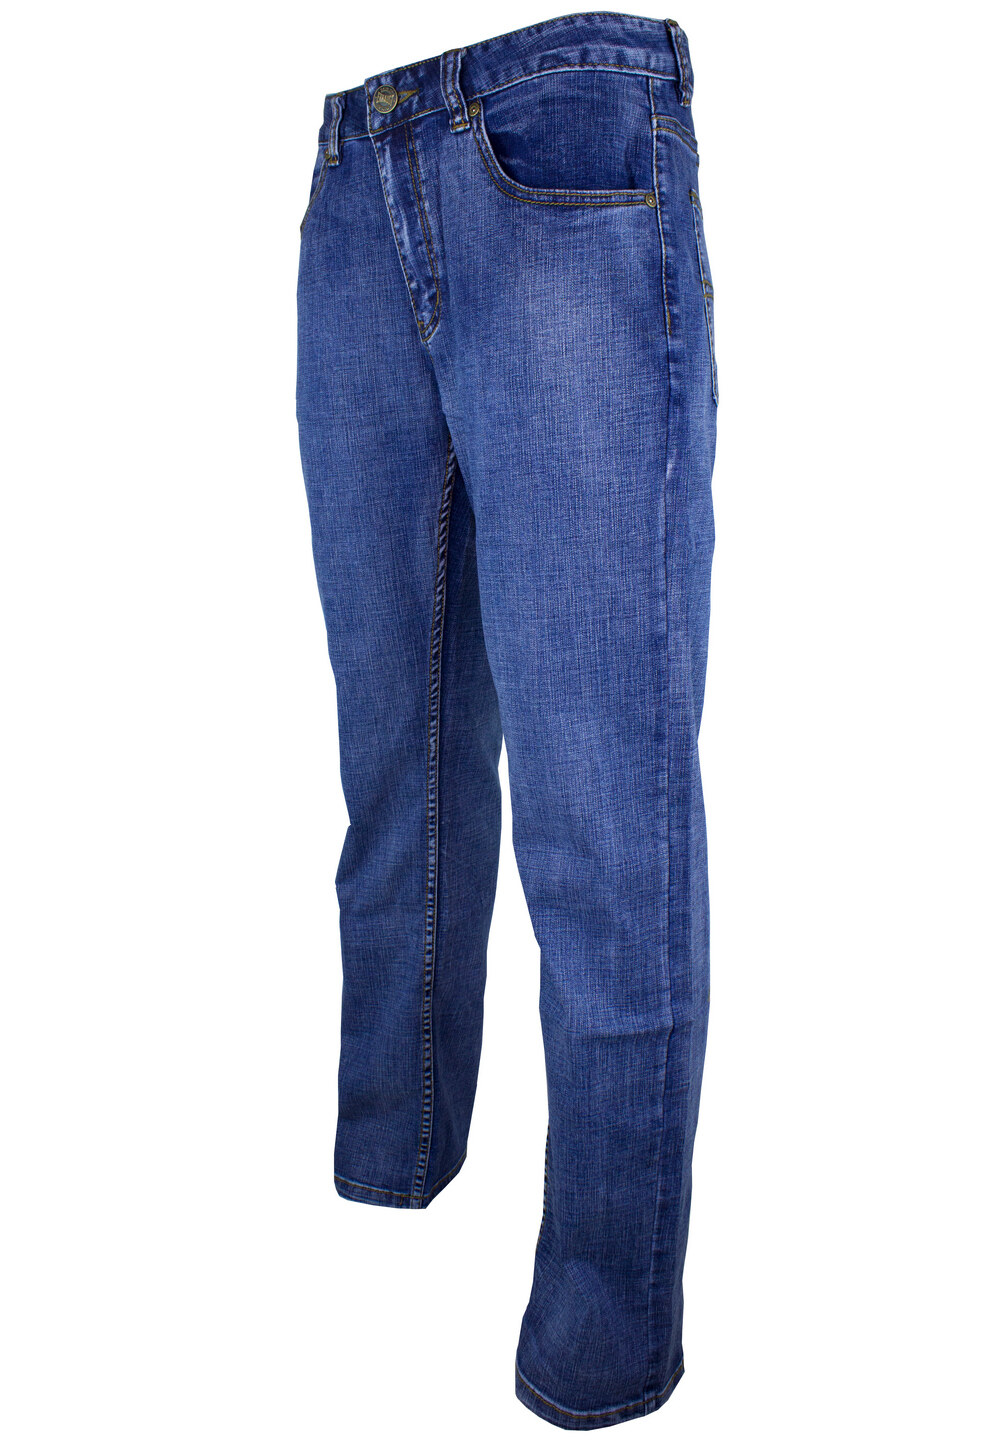 Exhaust Stretch Straight Cut Denim Long Pant 909